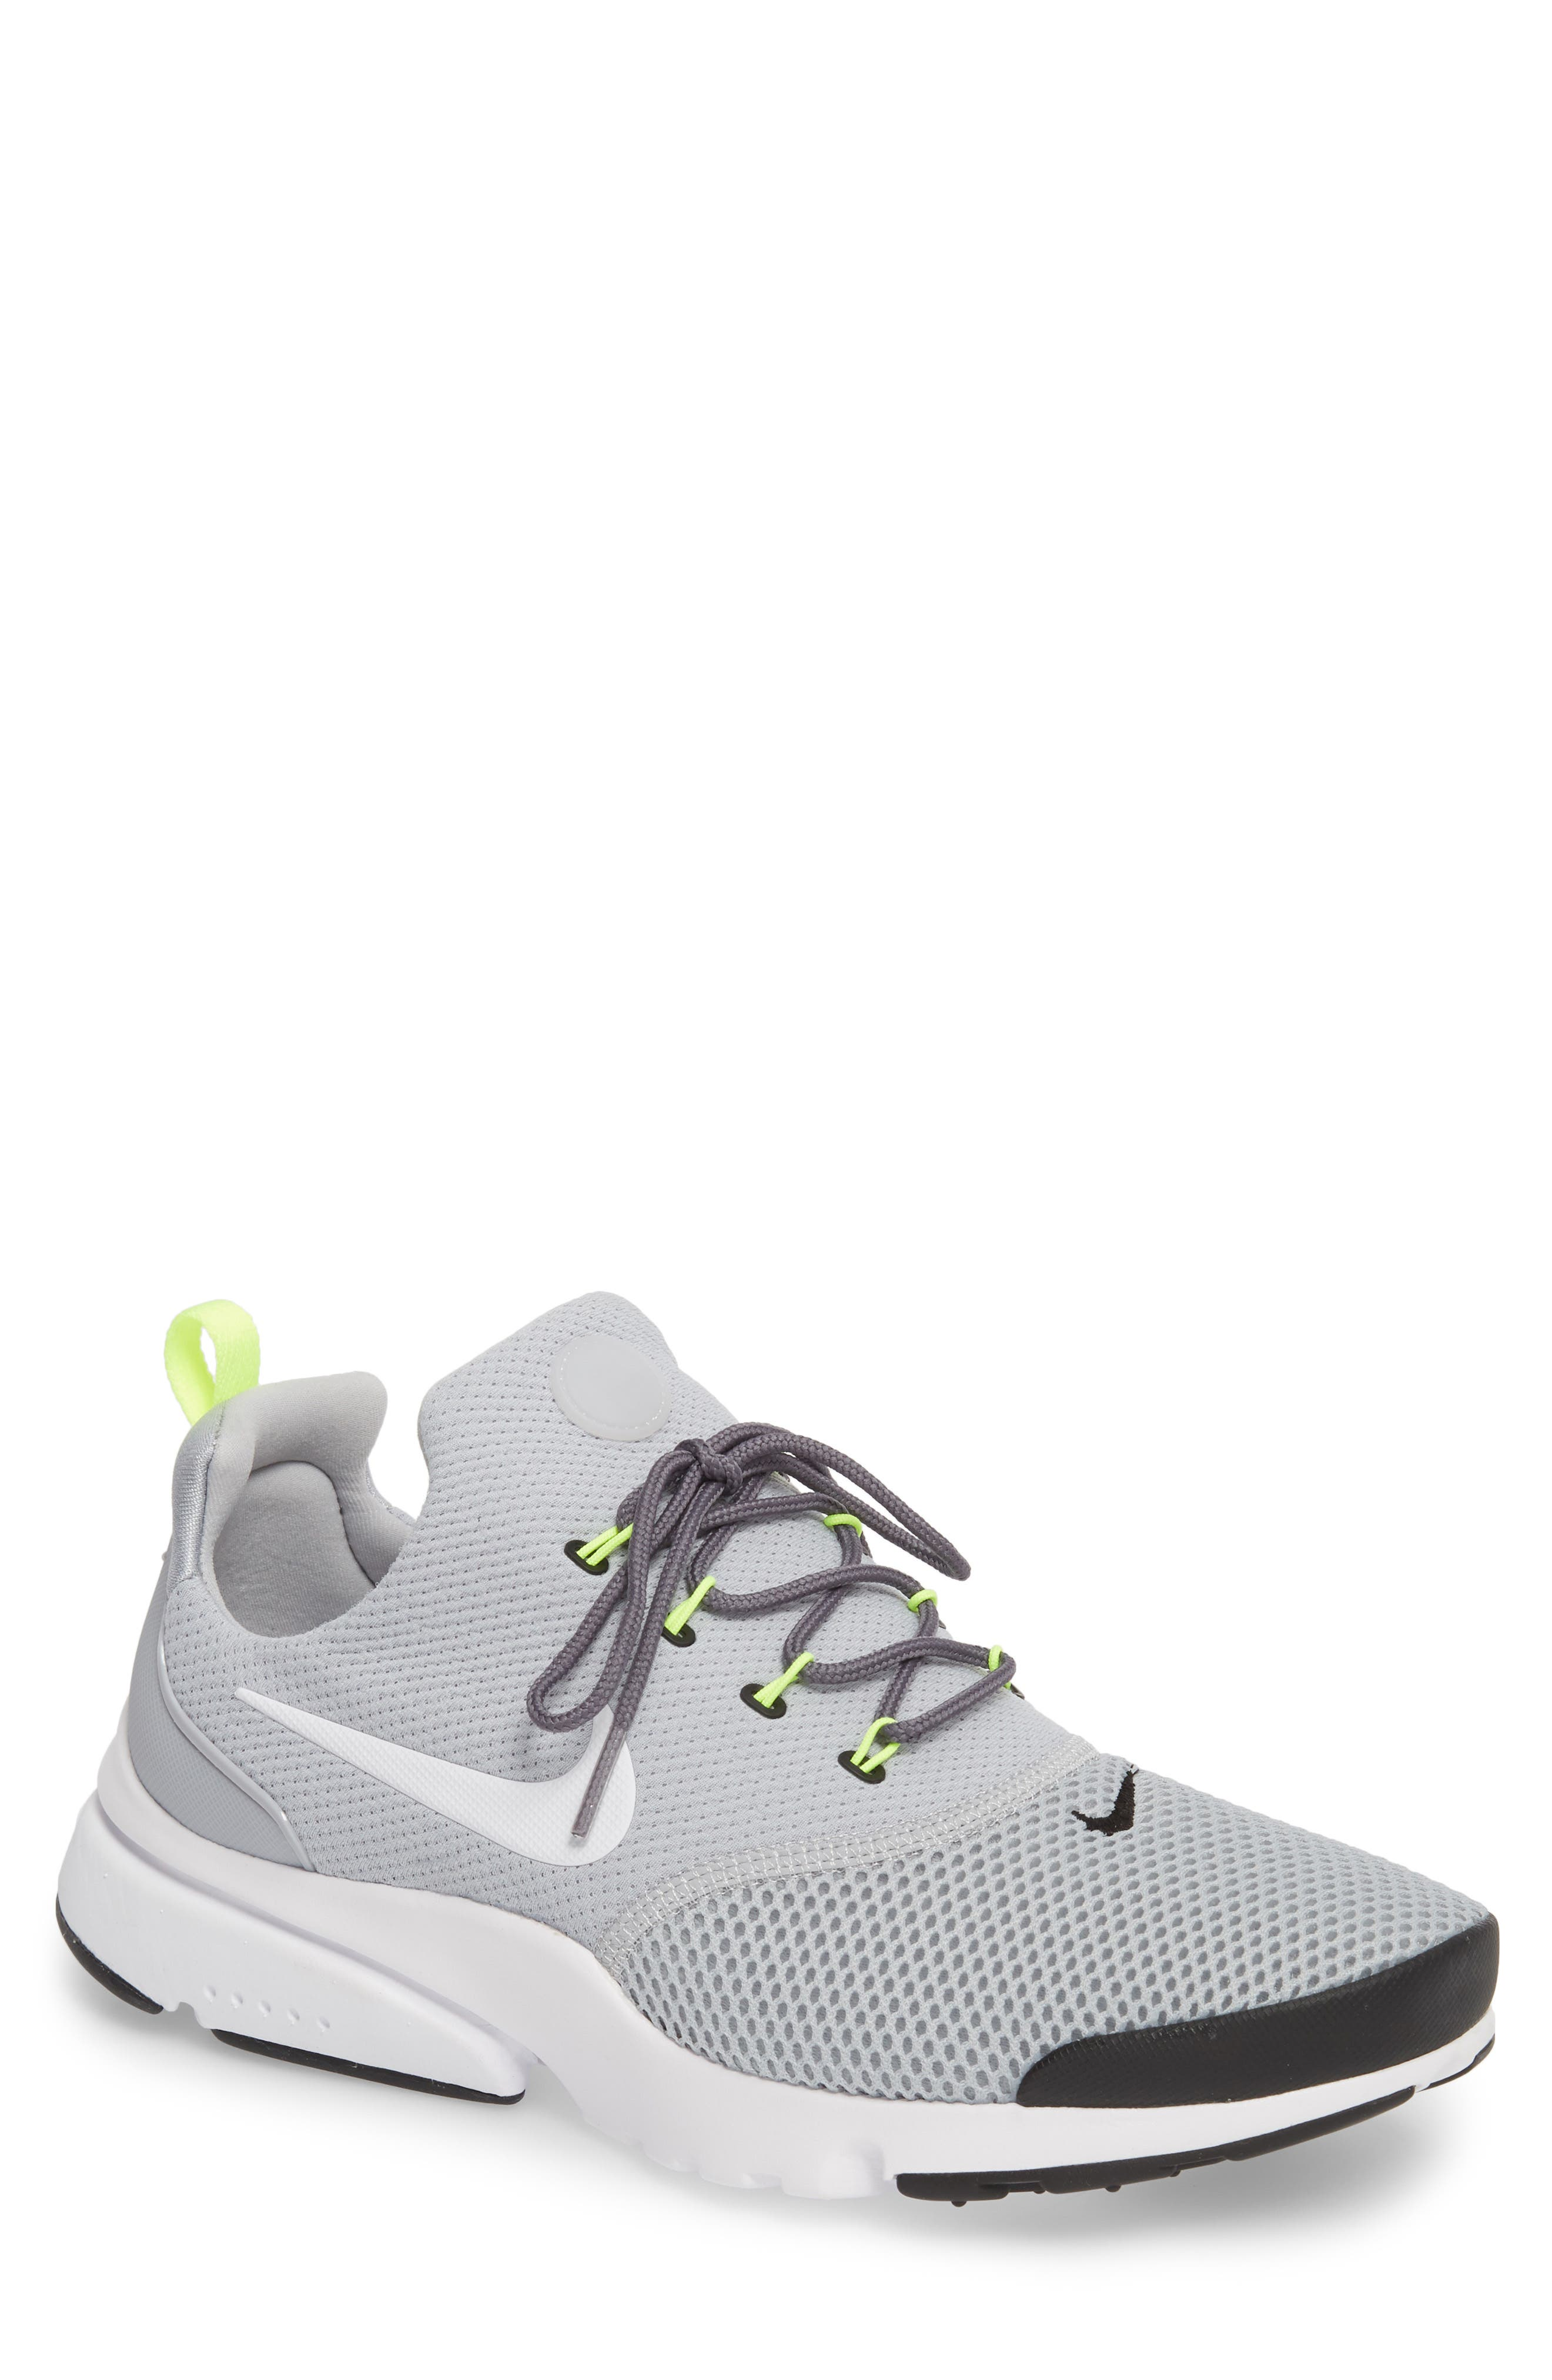 Presto Fly Sneaker,                             Main thumbnail 1, color,                             Wolf Grey/ White/ Volt